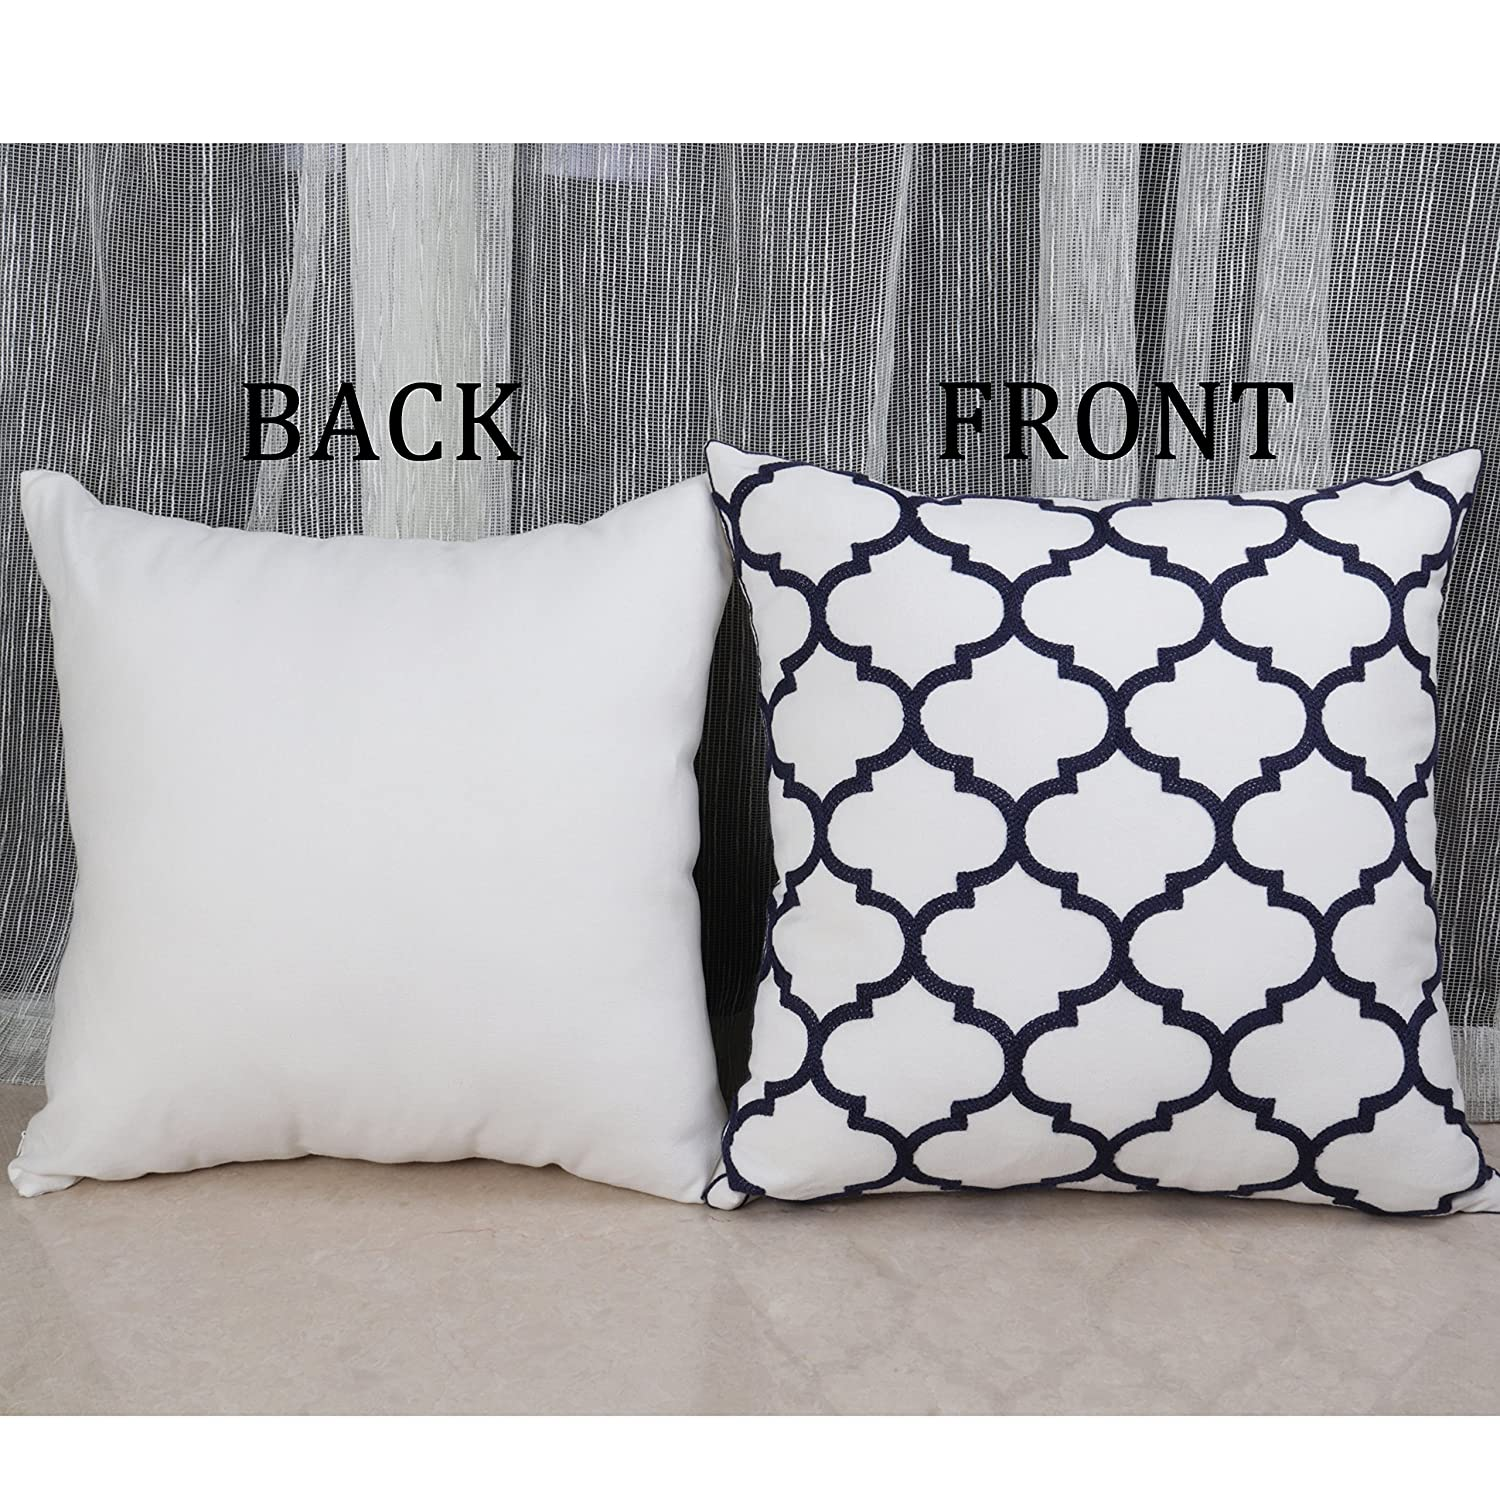 Black Pack of 1 Bridgeso Elegant Throw Pillow Case Black Floral embroidered Soft Cotton Linen Blend Decorative Pillow Cover Sham for Couch 45 x 45cm 18 x 18 inch